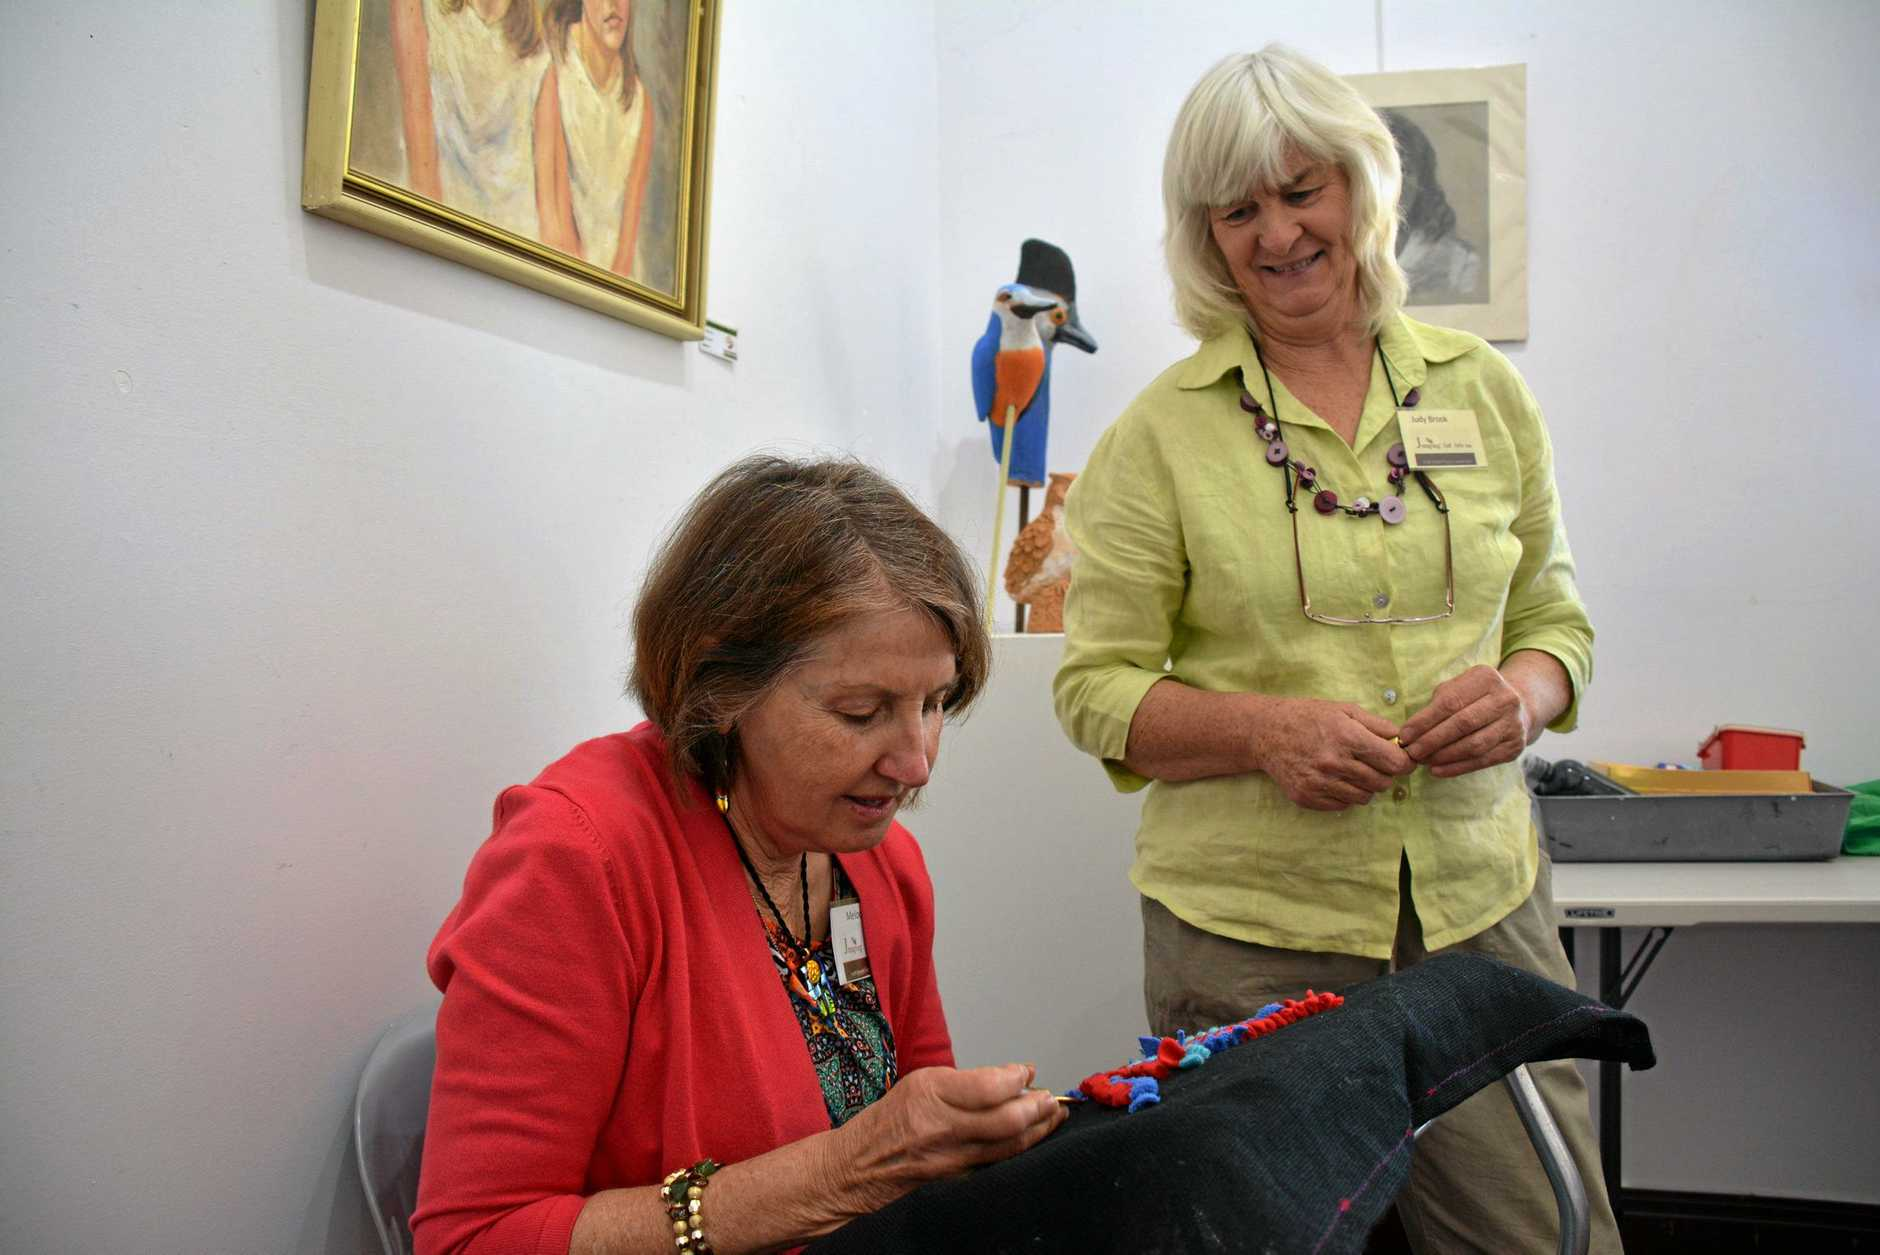 Melody Cook and Judy Brook have a go at rug hooking during the 'The Spring Collection' Jumping Ant Arts Inc.'s exhibition launch on September 4.